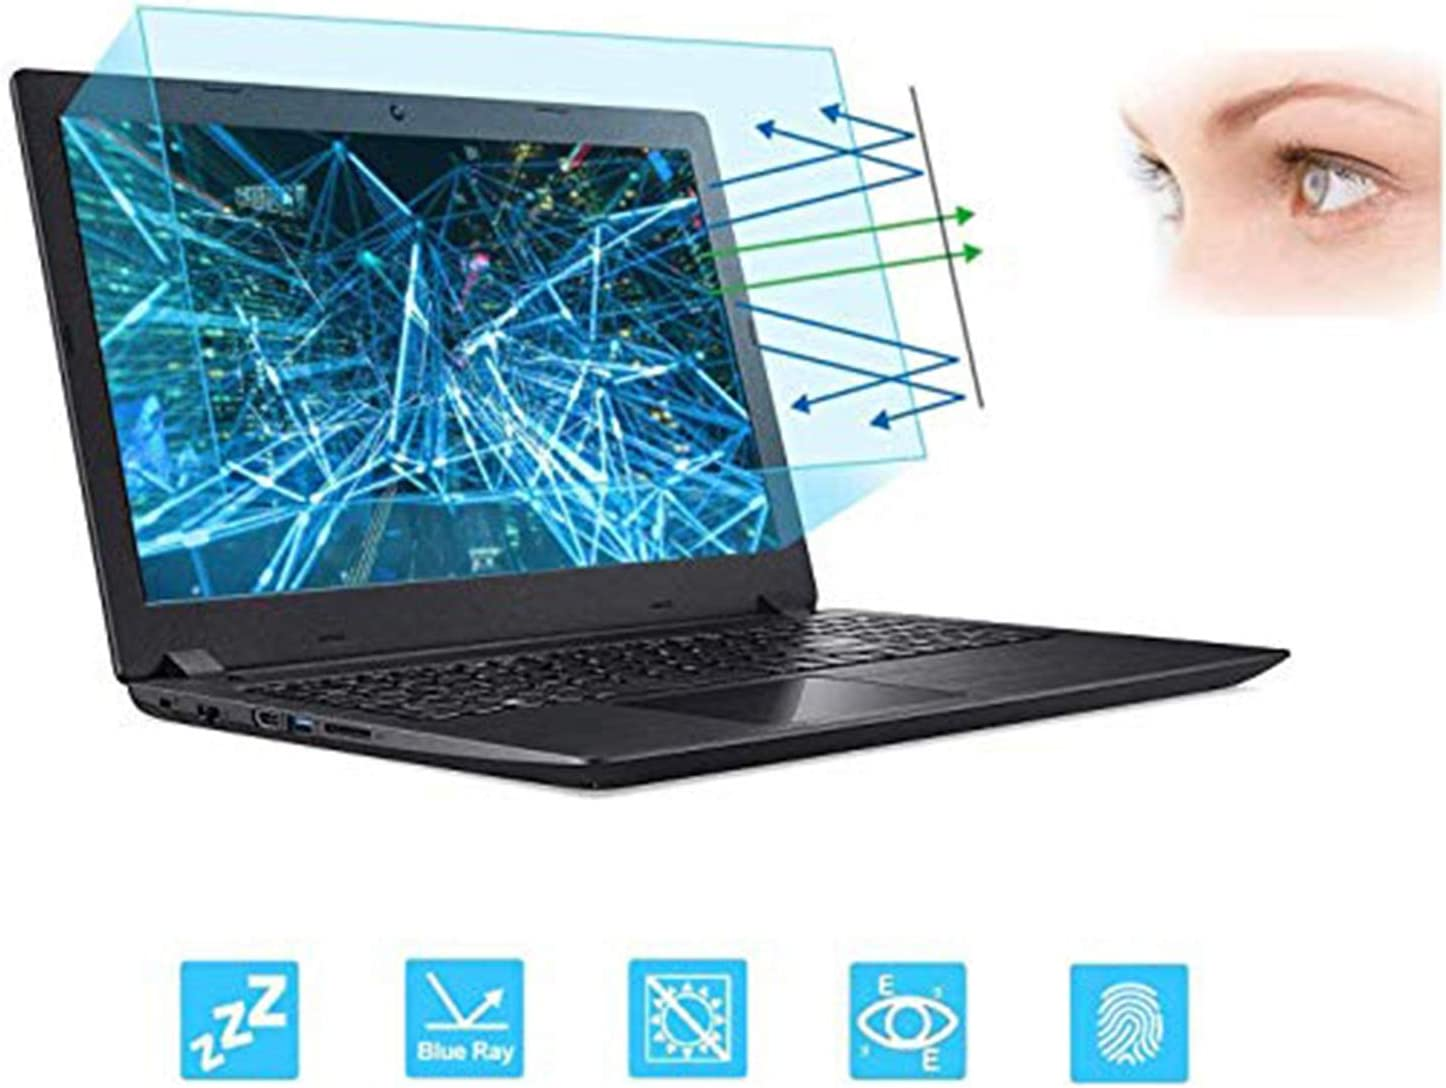 "15.6 Inch Laptop Screen Protector -Blue Light and Anti Glare Filter, FORITO Eye Protection Blue Light Blocking & Anti Glare Screen Protector for 15.6"" with 16:9 Aspect Ratio Laptop"